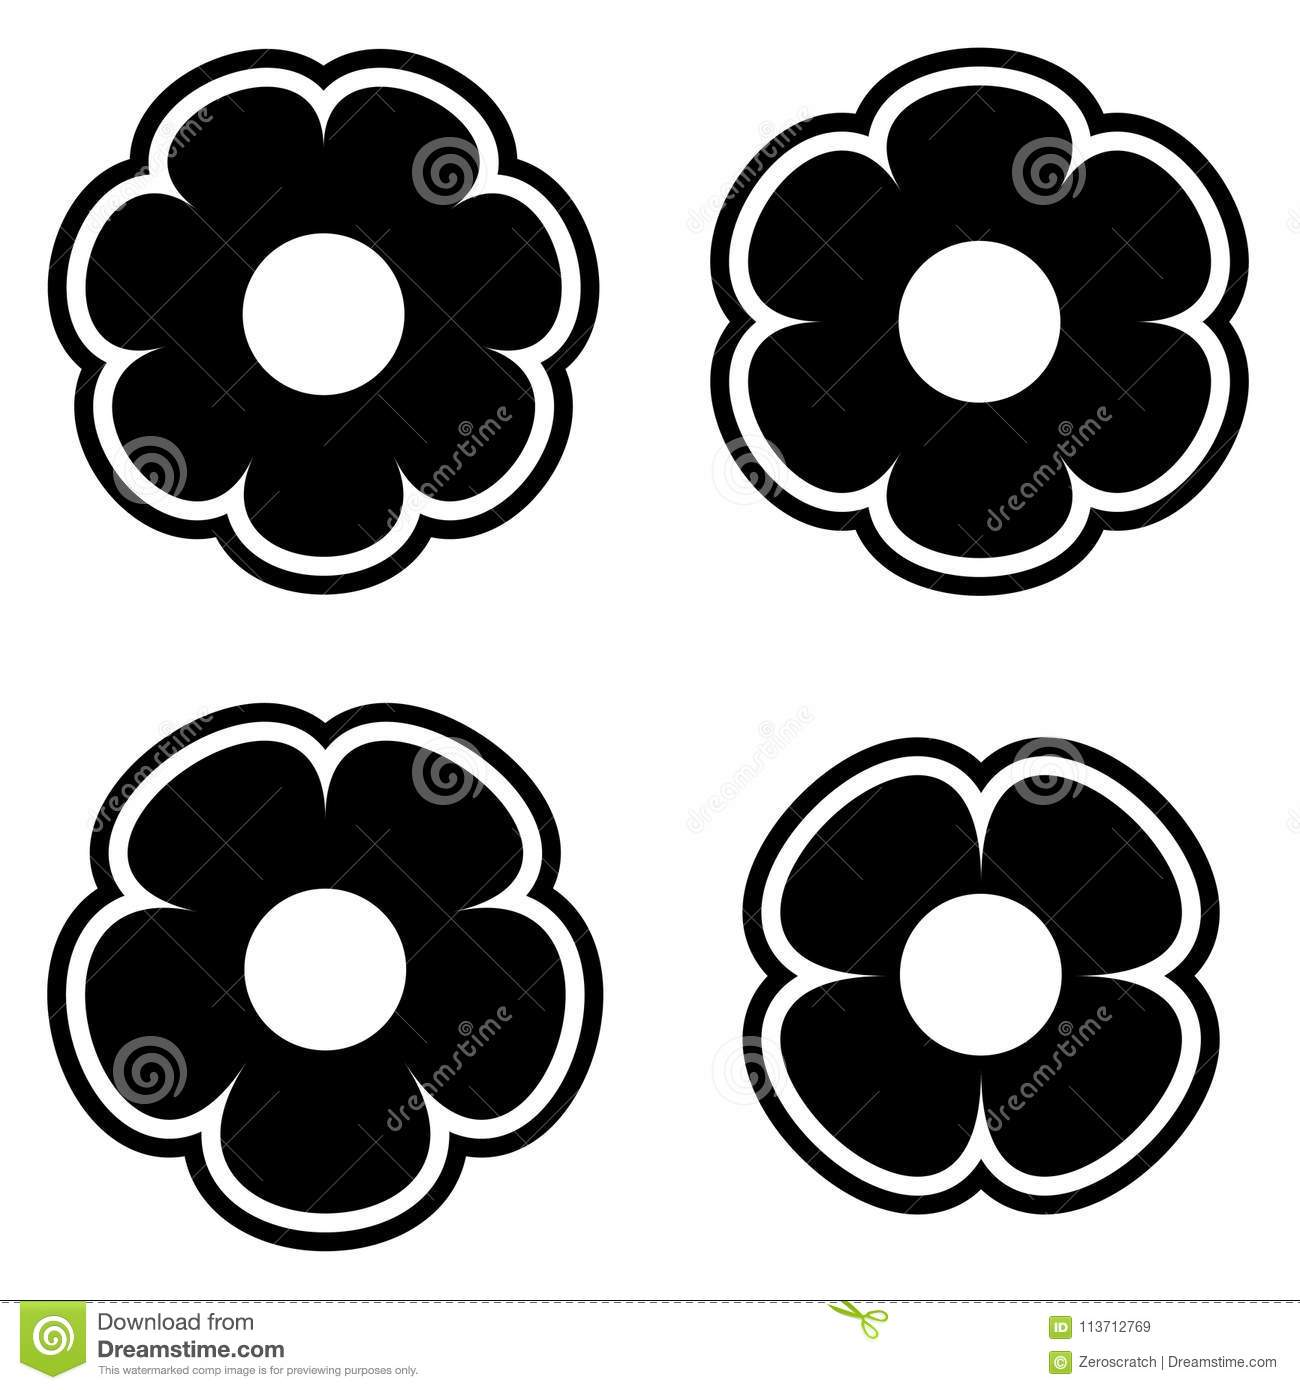 Simple black and white flower flowers icon symbol logo set stock download simple black and white flower flowers icon symbol logo set stock vector illustration of mightylinksfo